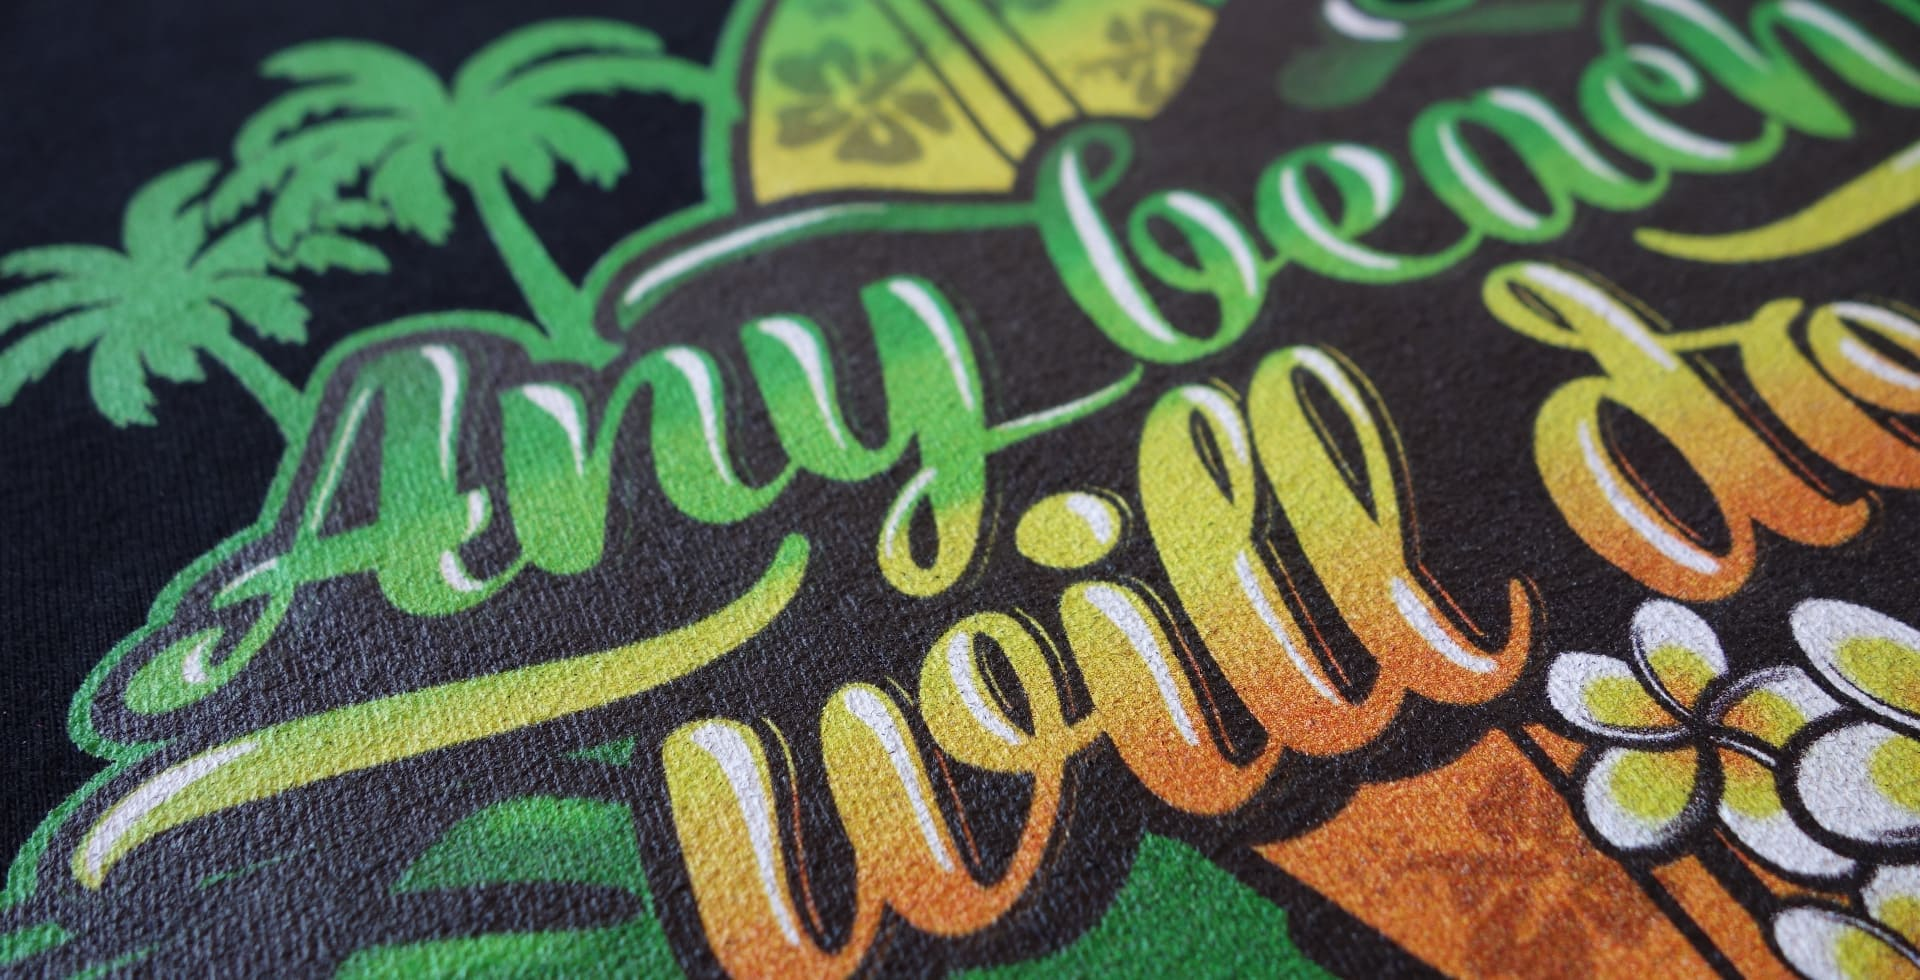 Section of a beach design print on a black t-shirt